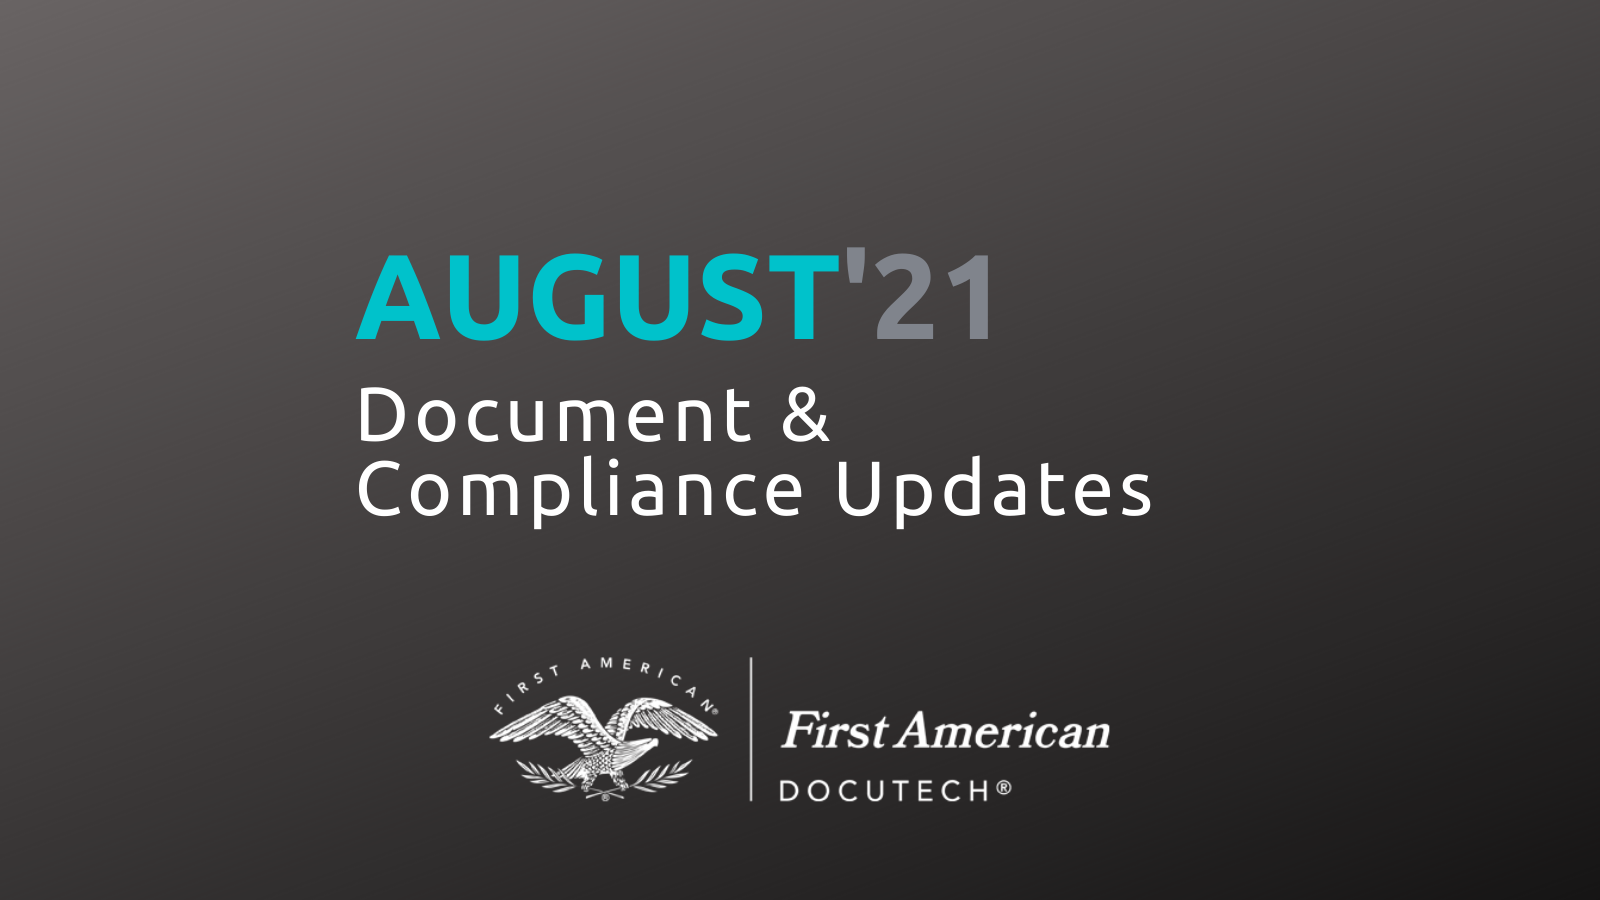 August '21 Document and Compliance Updates Roundup